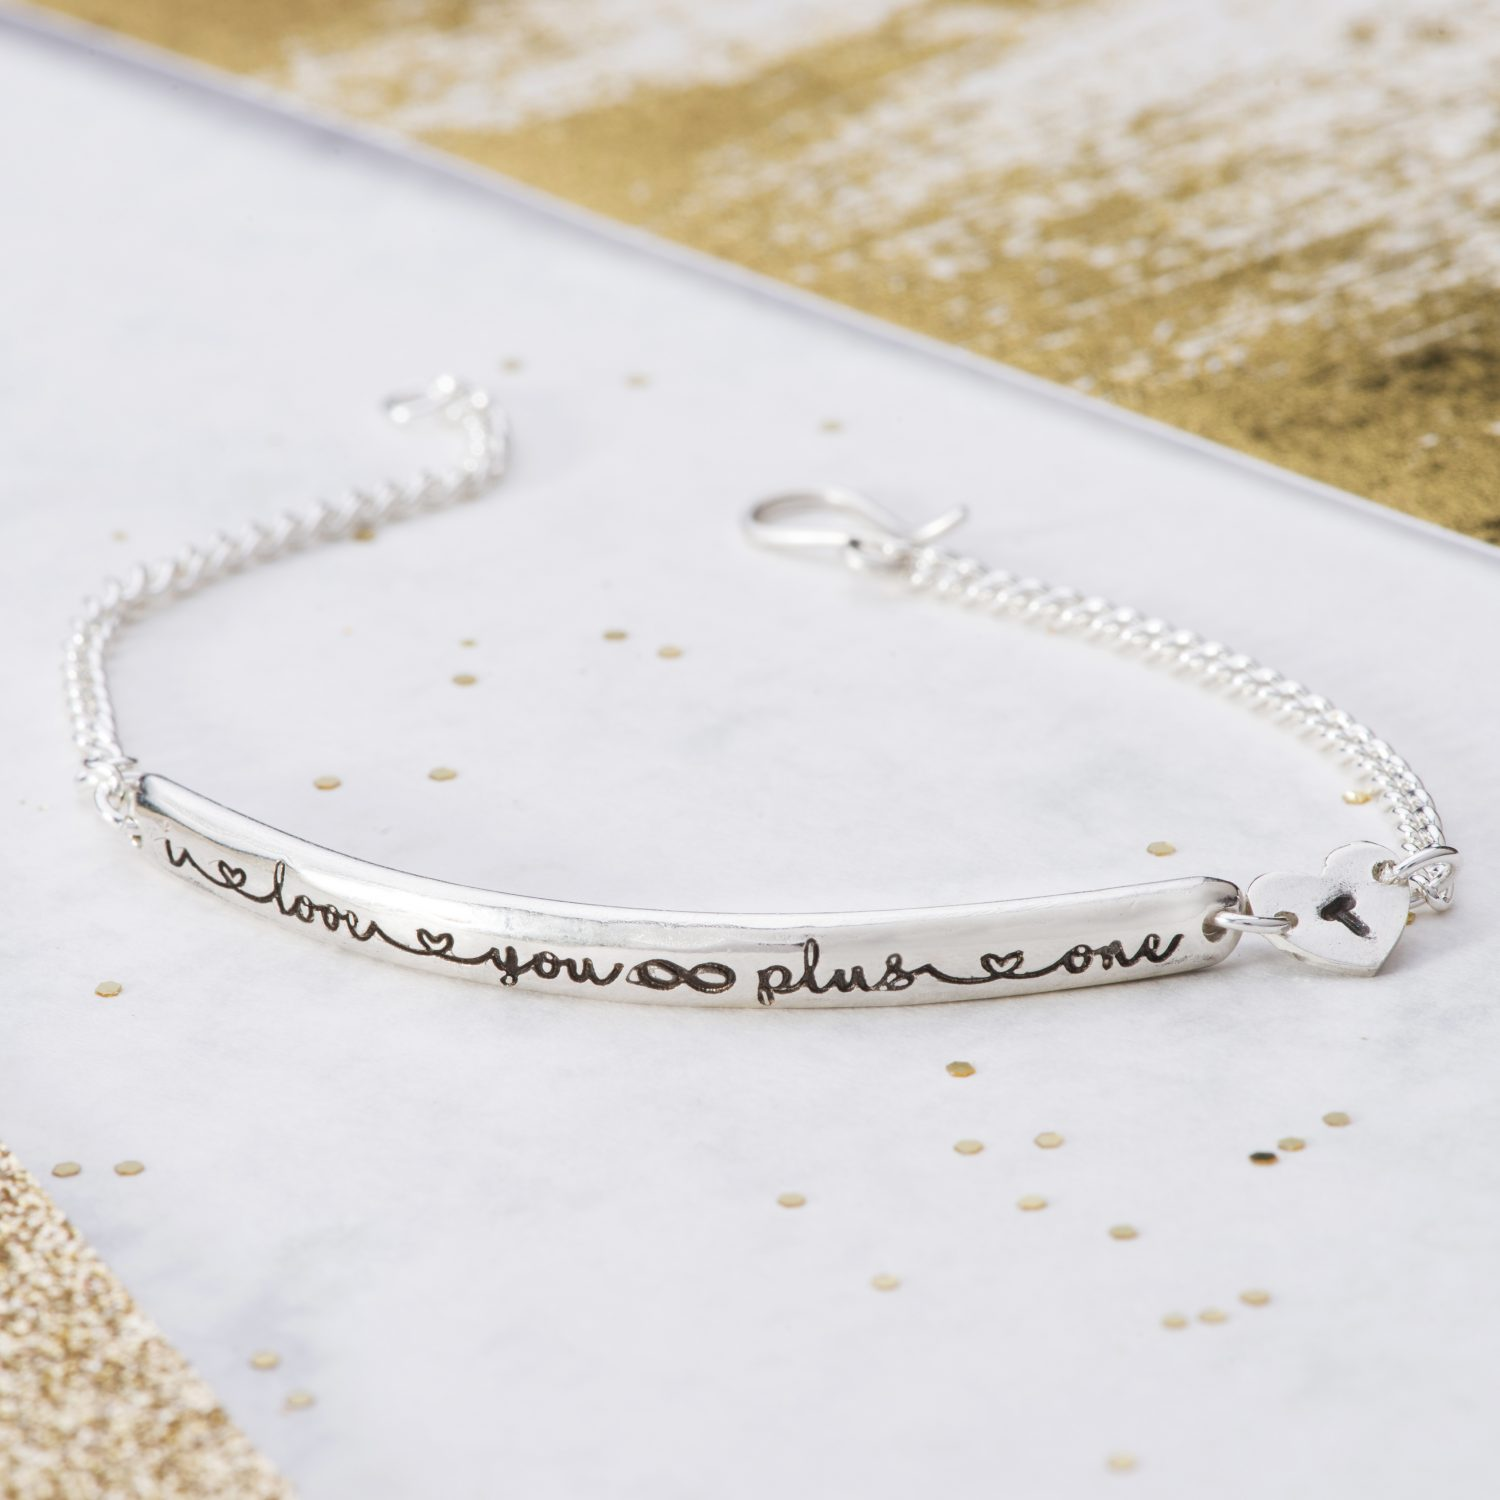 I love you Infinity plus one silver keepsake bracelet